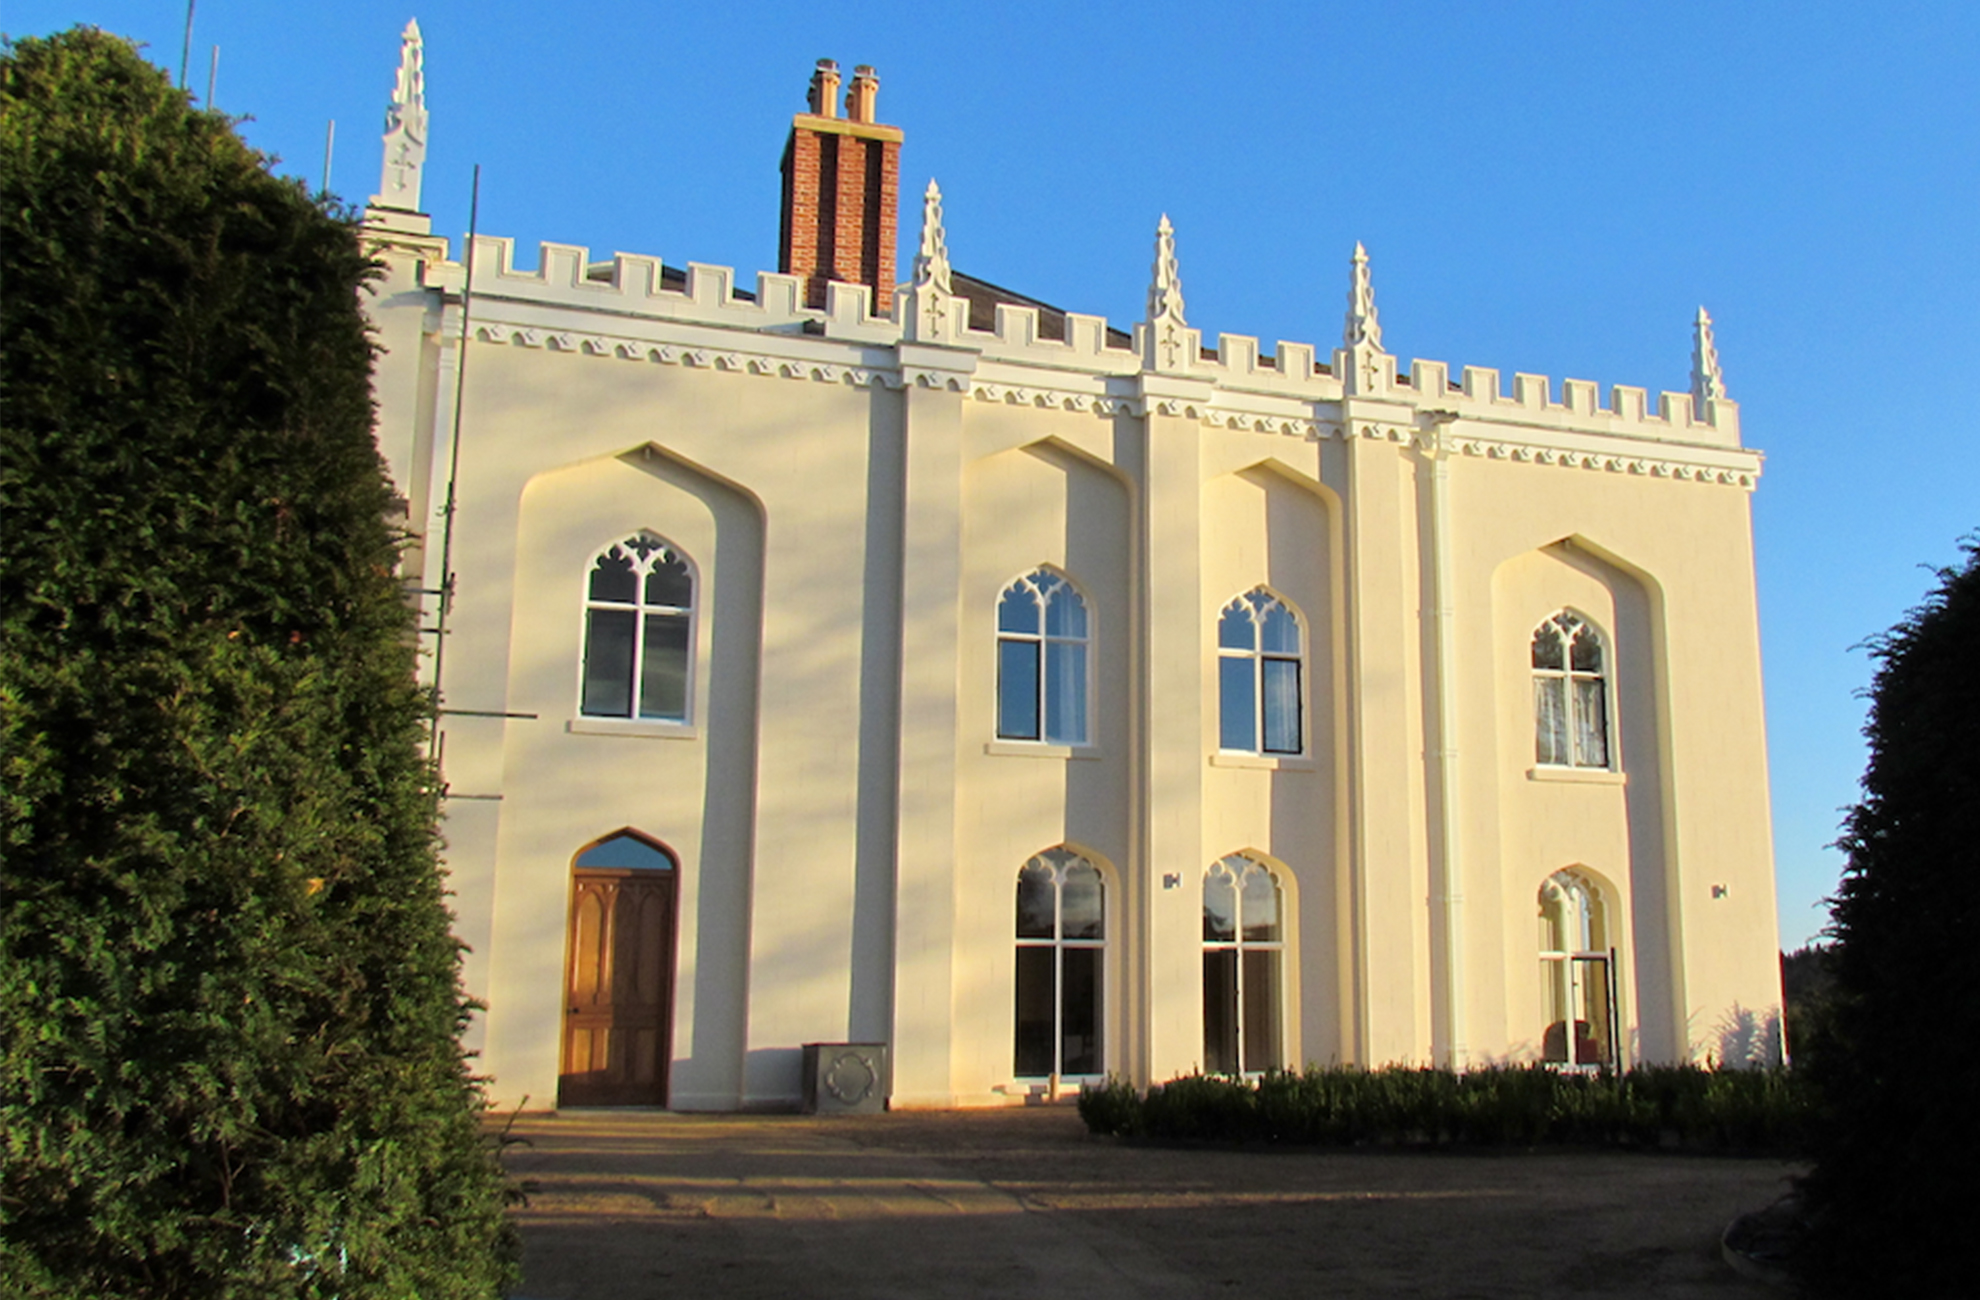 The North Wing at Combermere Abbey used for guest and wedding accommodation in Shropshire